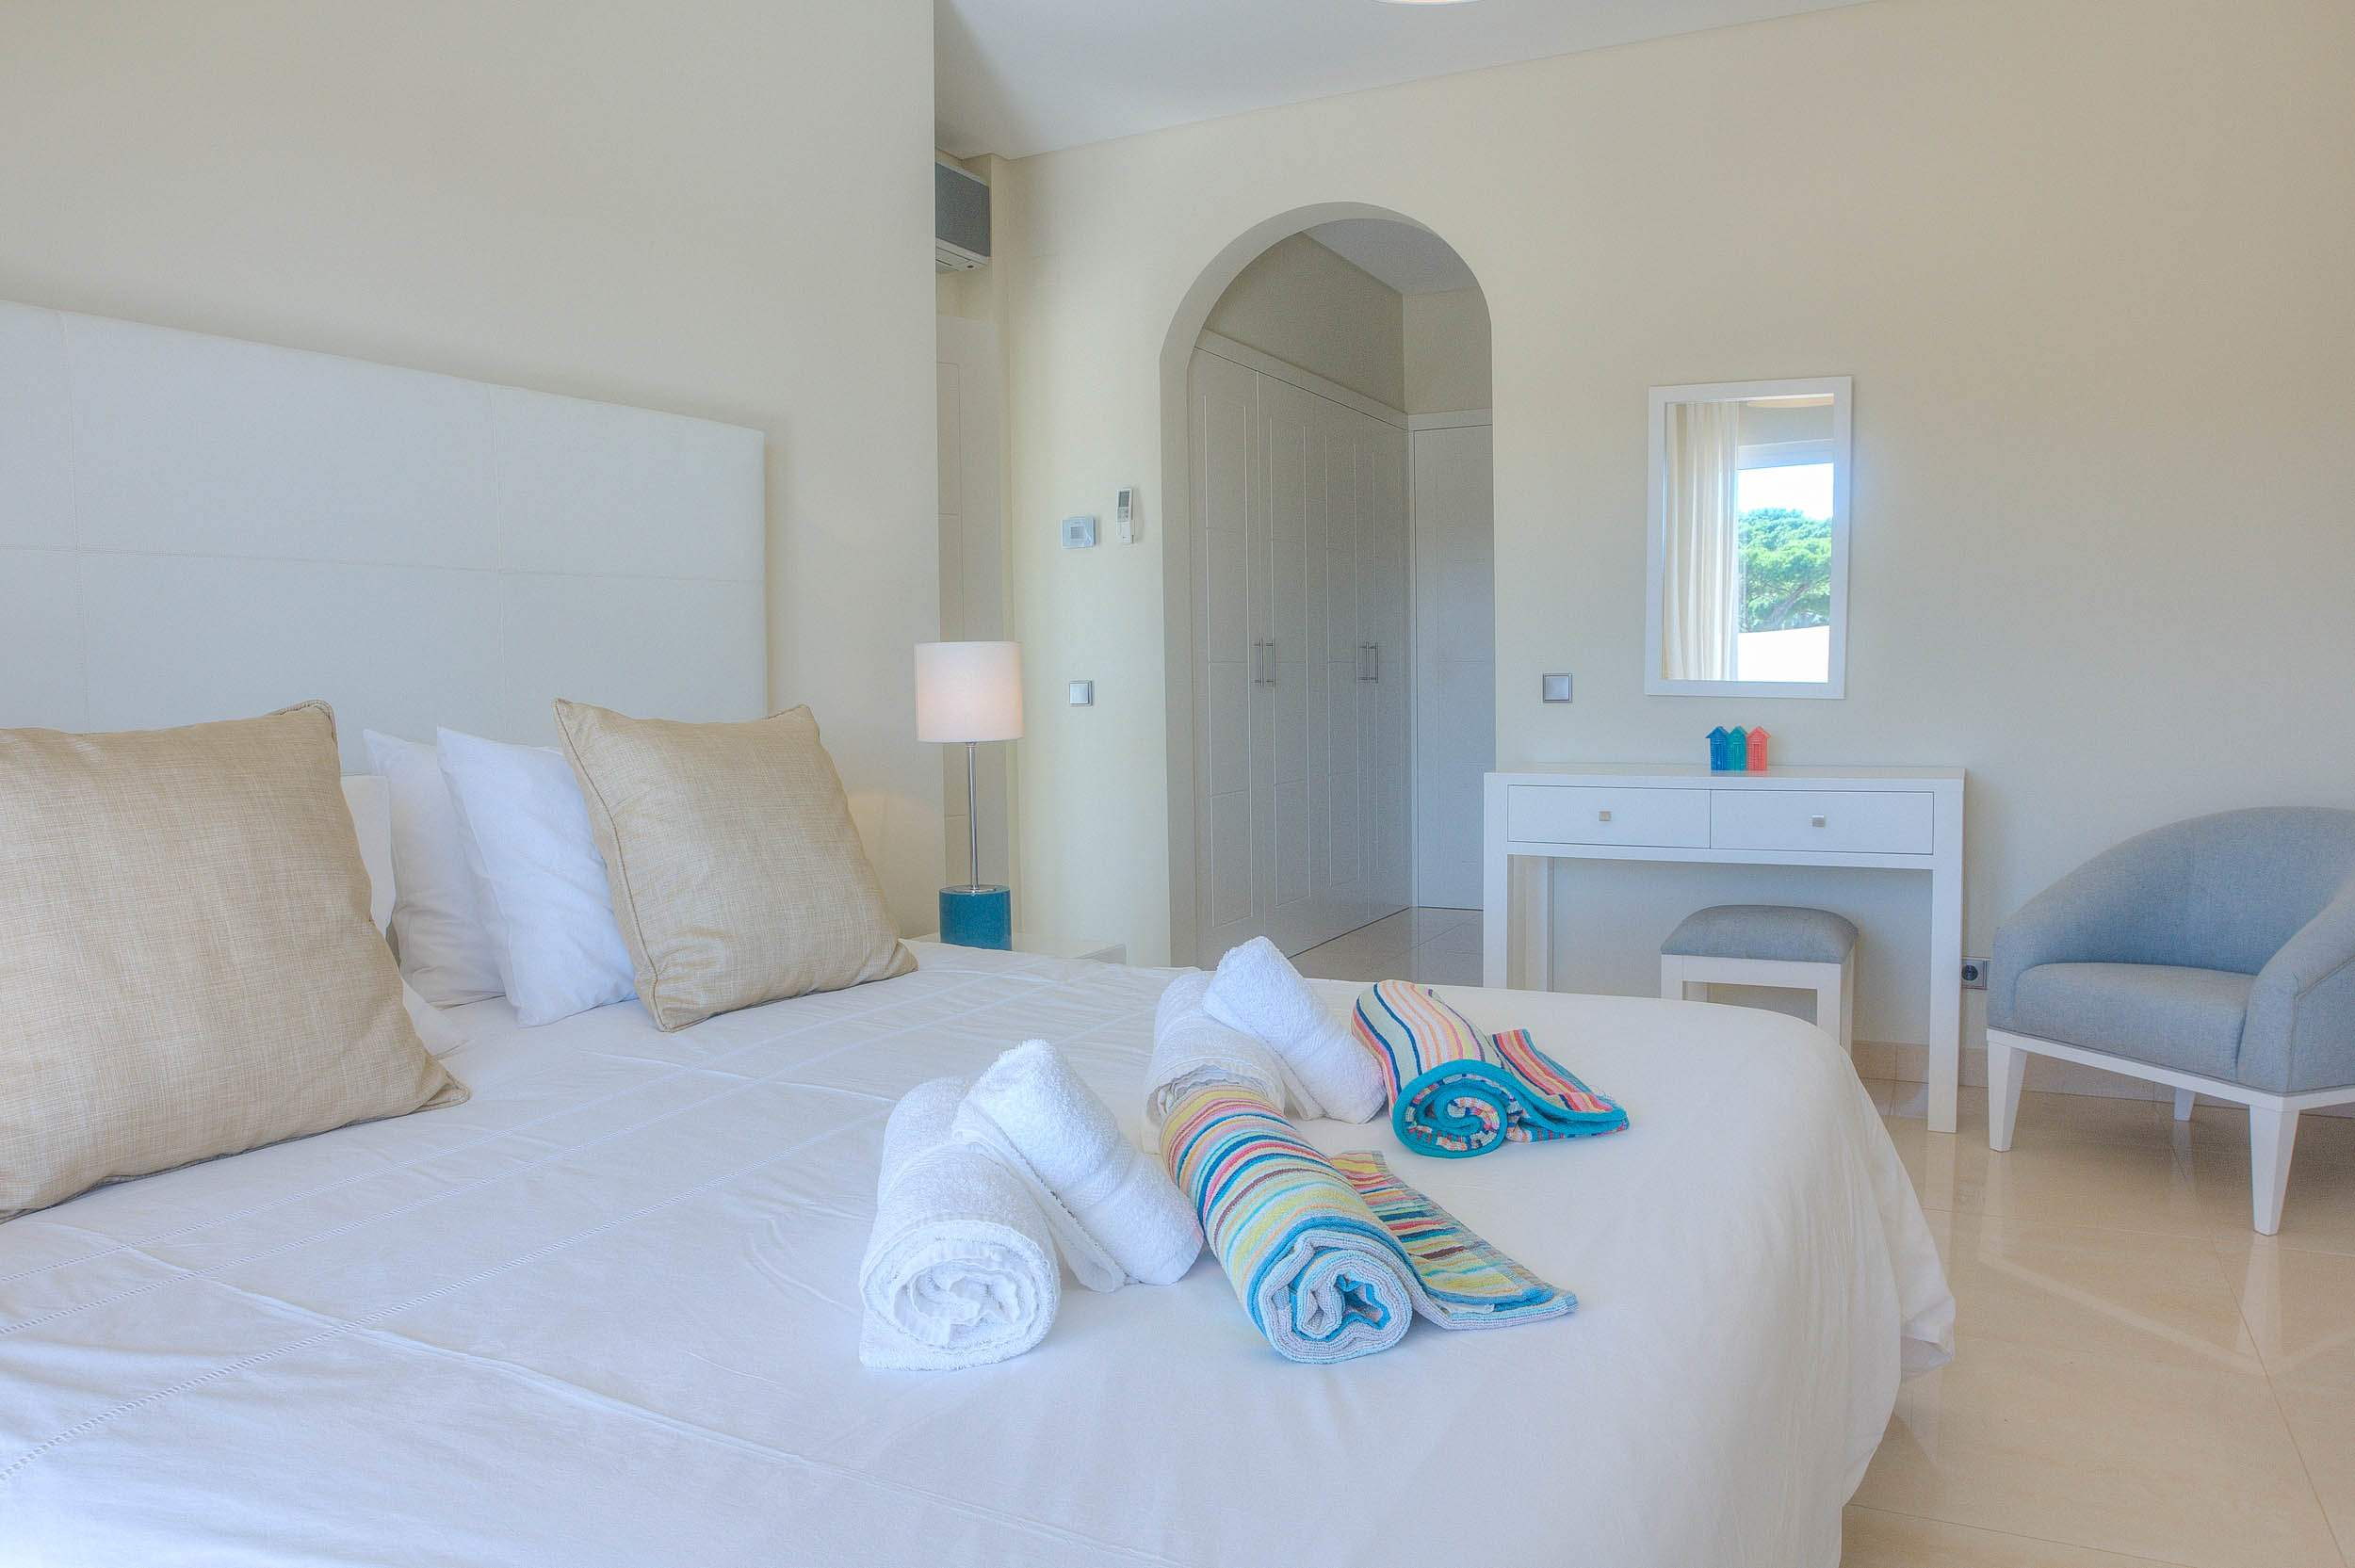 Villa Vida Doce, 6 bedroom villa in Vilamoura Area, Algarve Photo #19